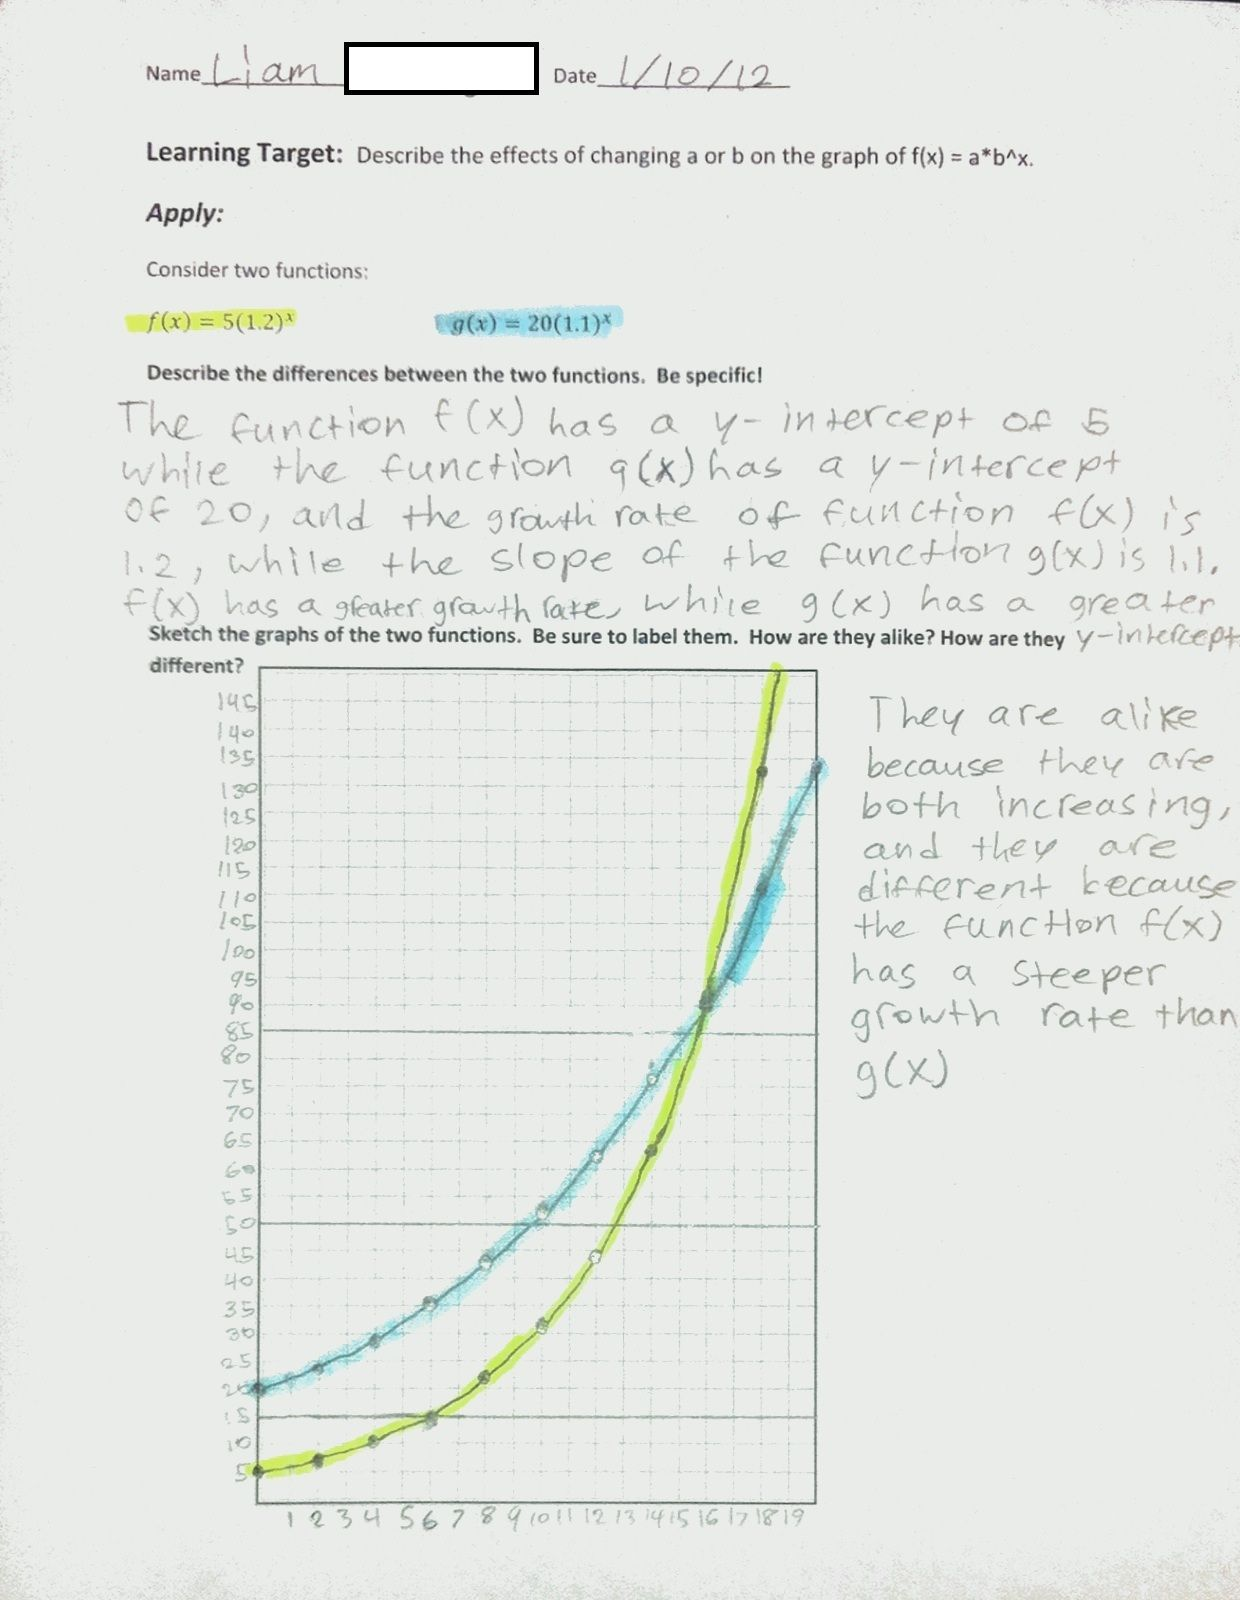 worksheet Exponential Decay Worksheet 10 images about exponential growthdecay on pinterest student math and algebra worksheets